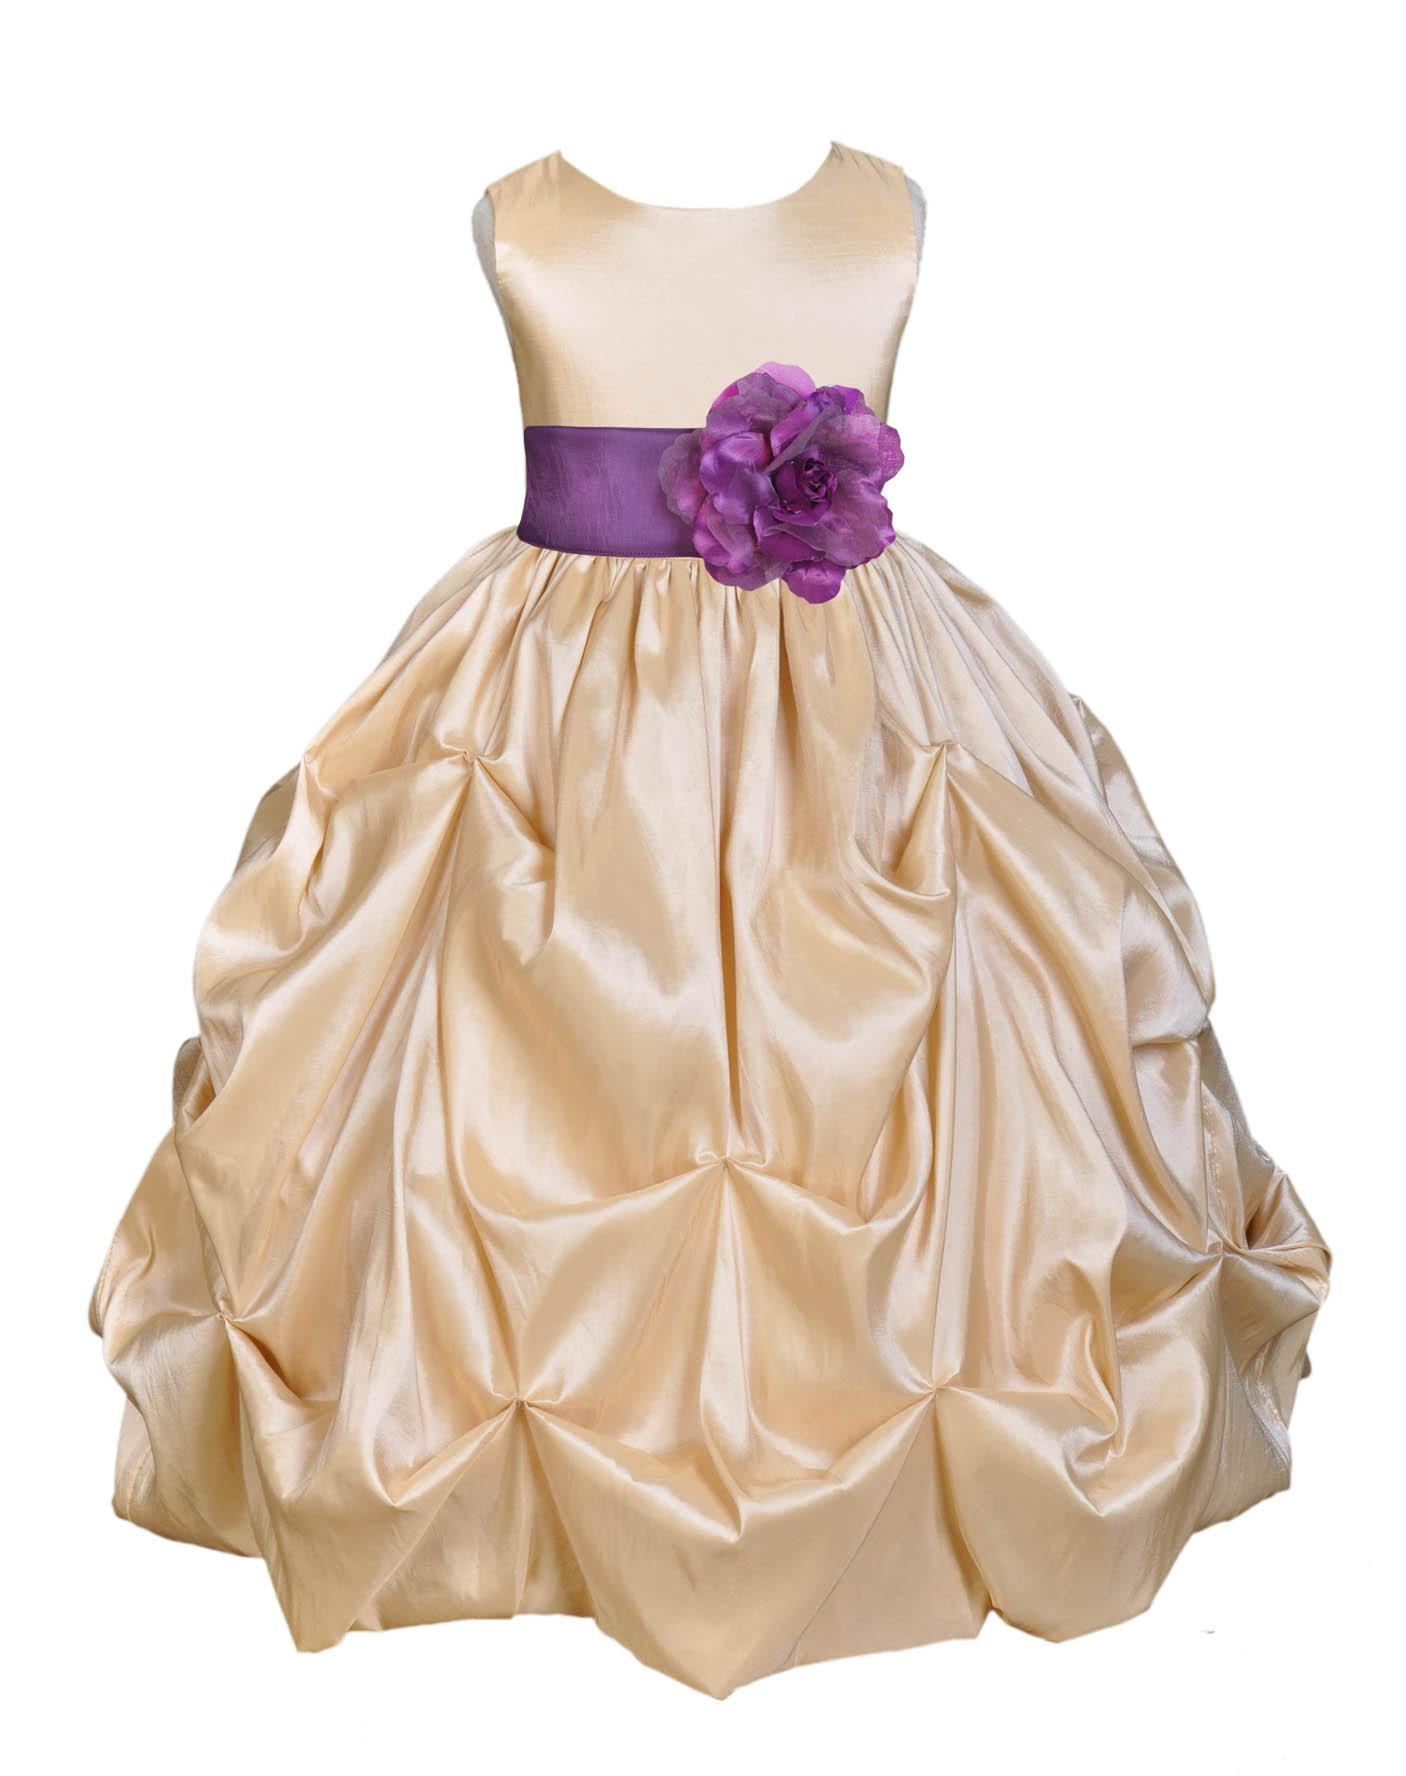 Ekidsbridal Taffeta Bubble Pick-up Champagne Flower Girl Dress Weddings Summer Easter Special Occasions Pageant Toddler Birthday Party Holiday Bridal Baptism Junior Bridesmaid Communion 301S